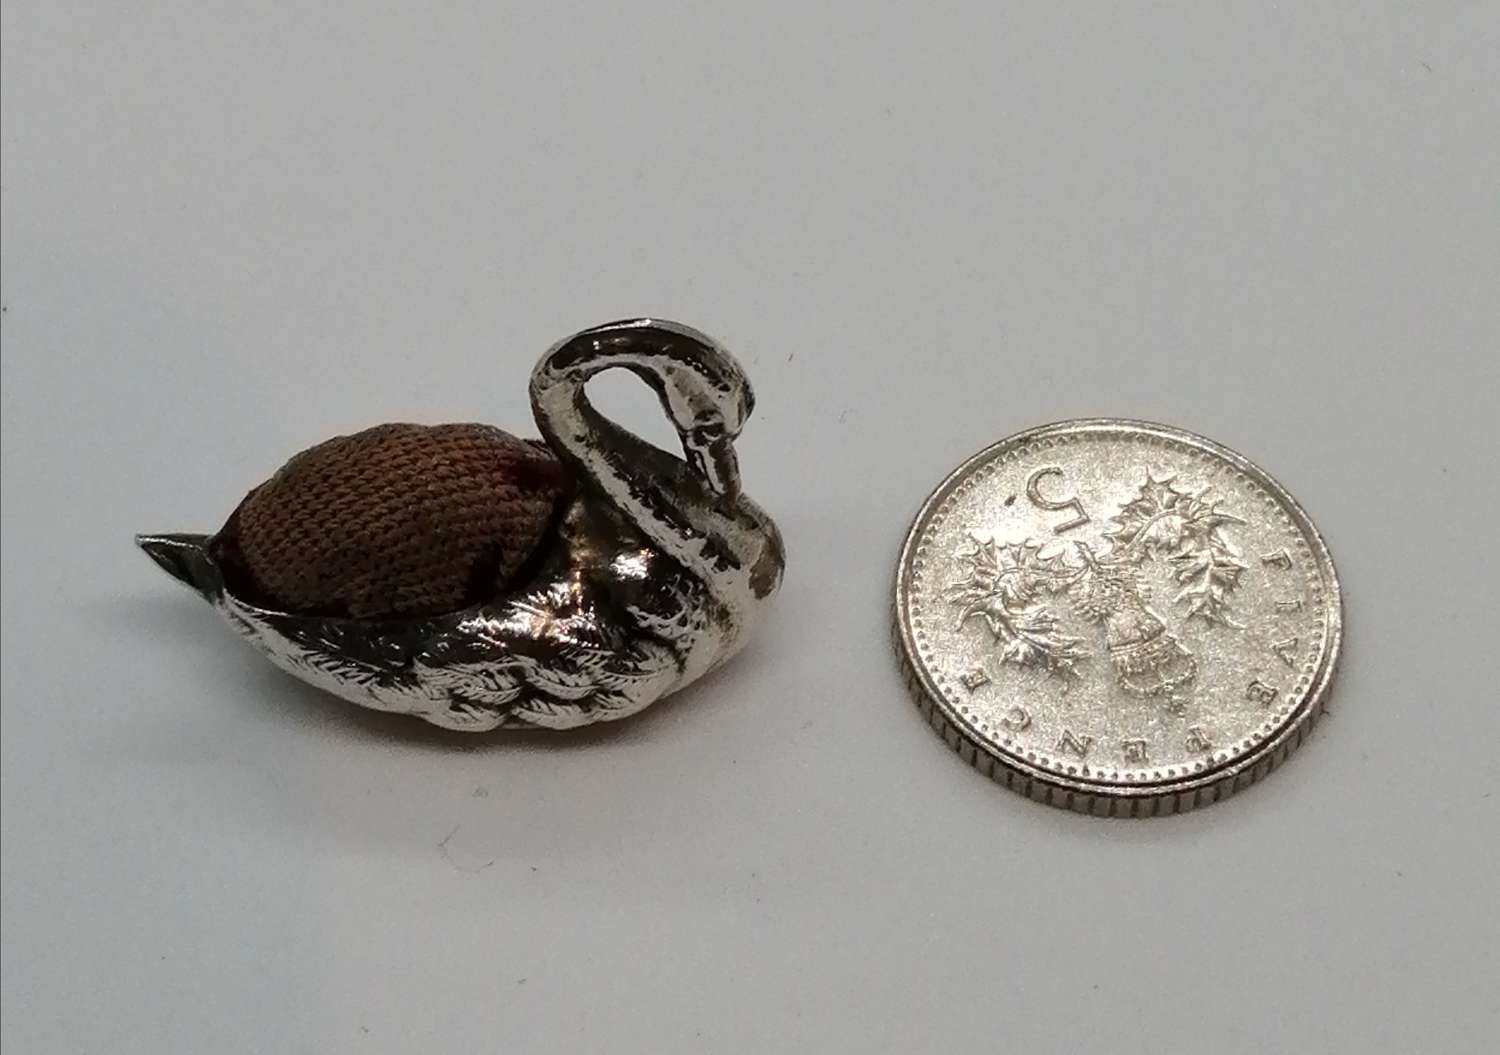 Miniature silver swan pincushion